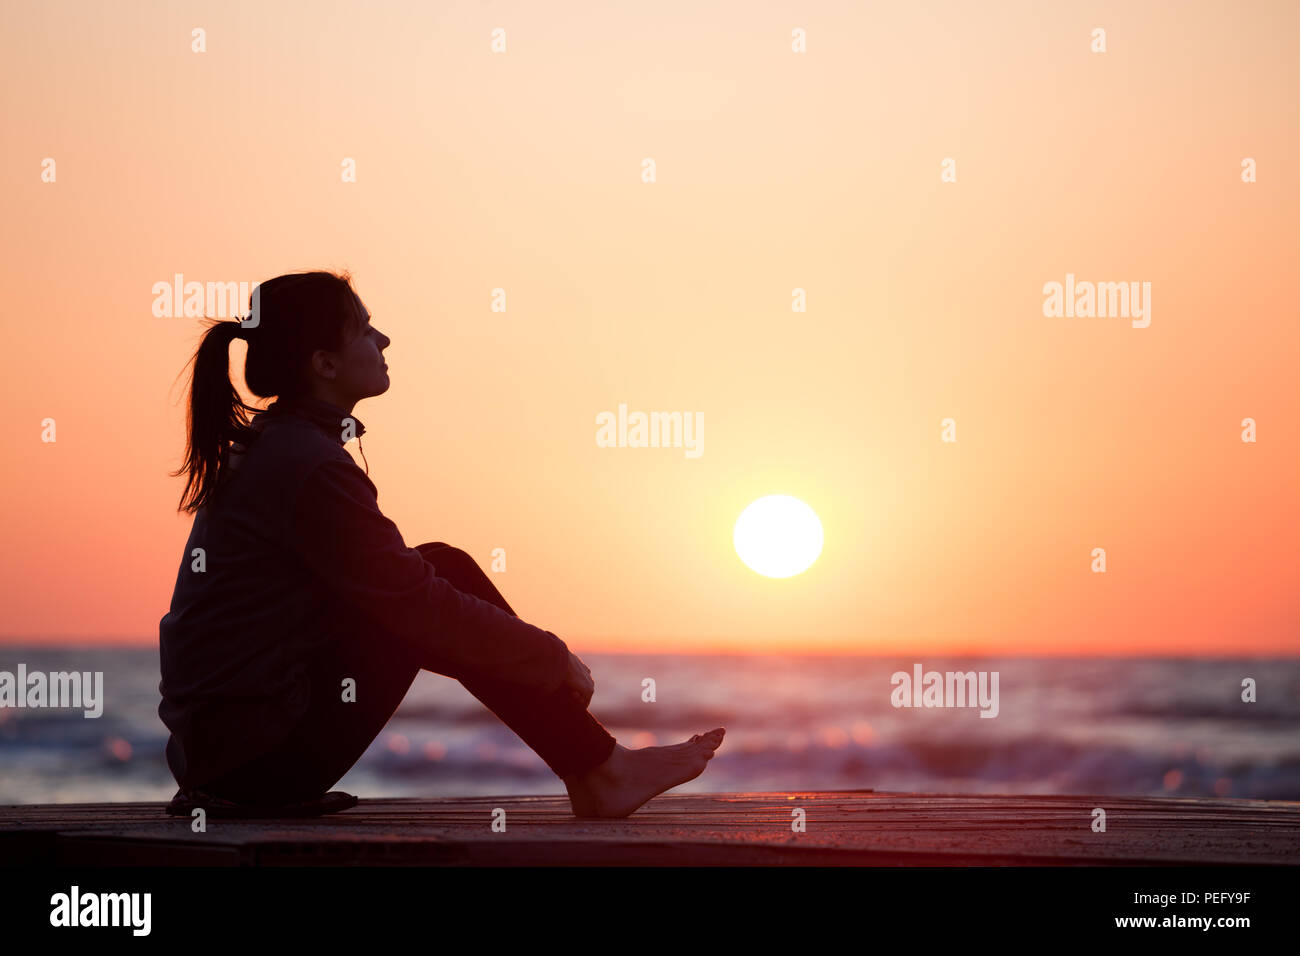 Lonely girl sitting on the sunrise beach woman silhouette over sunrise sky stock image